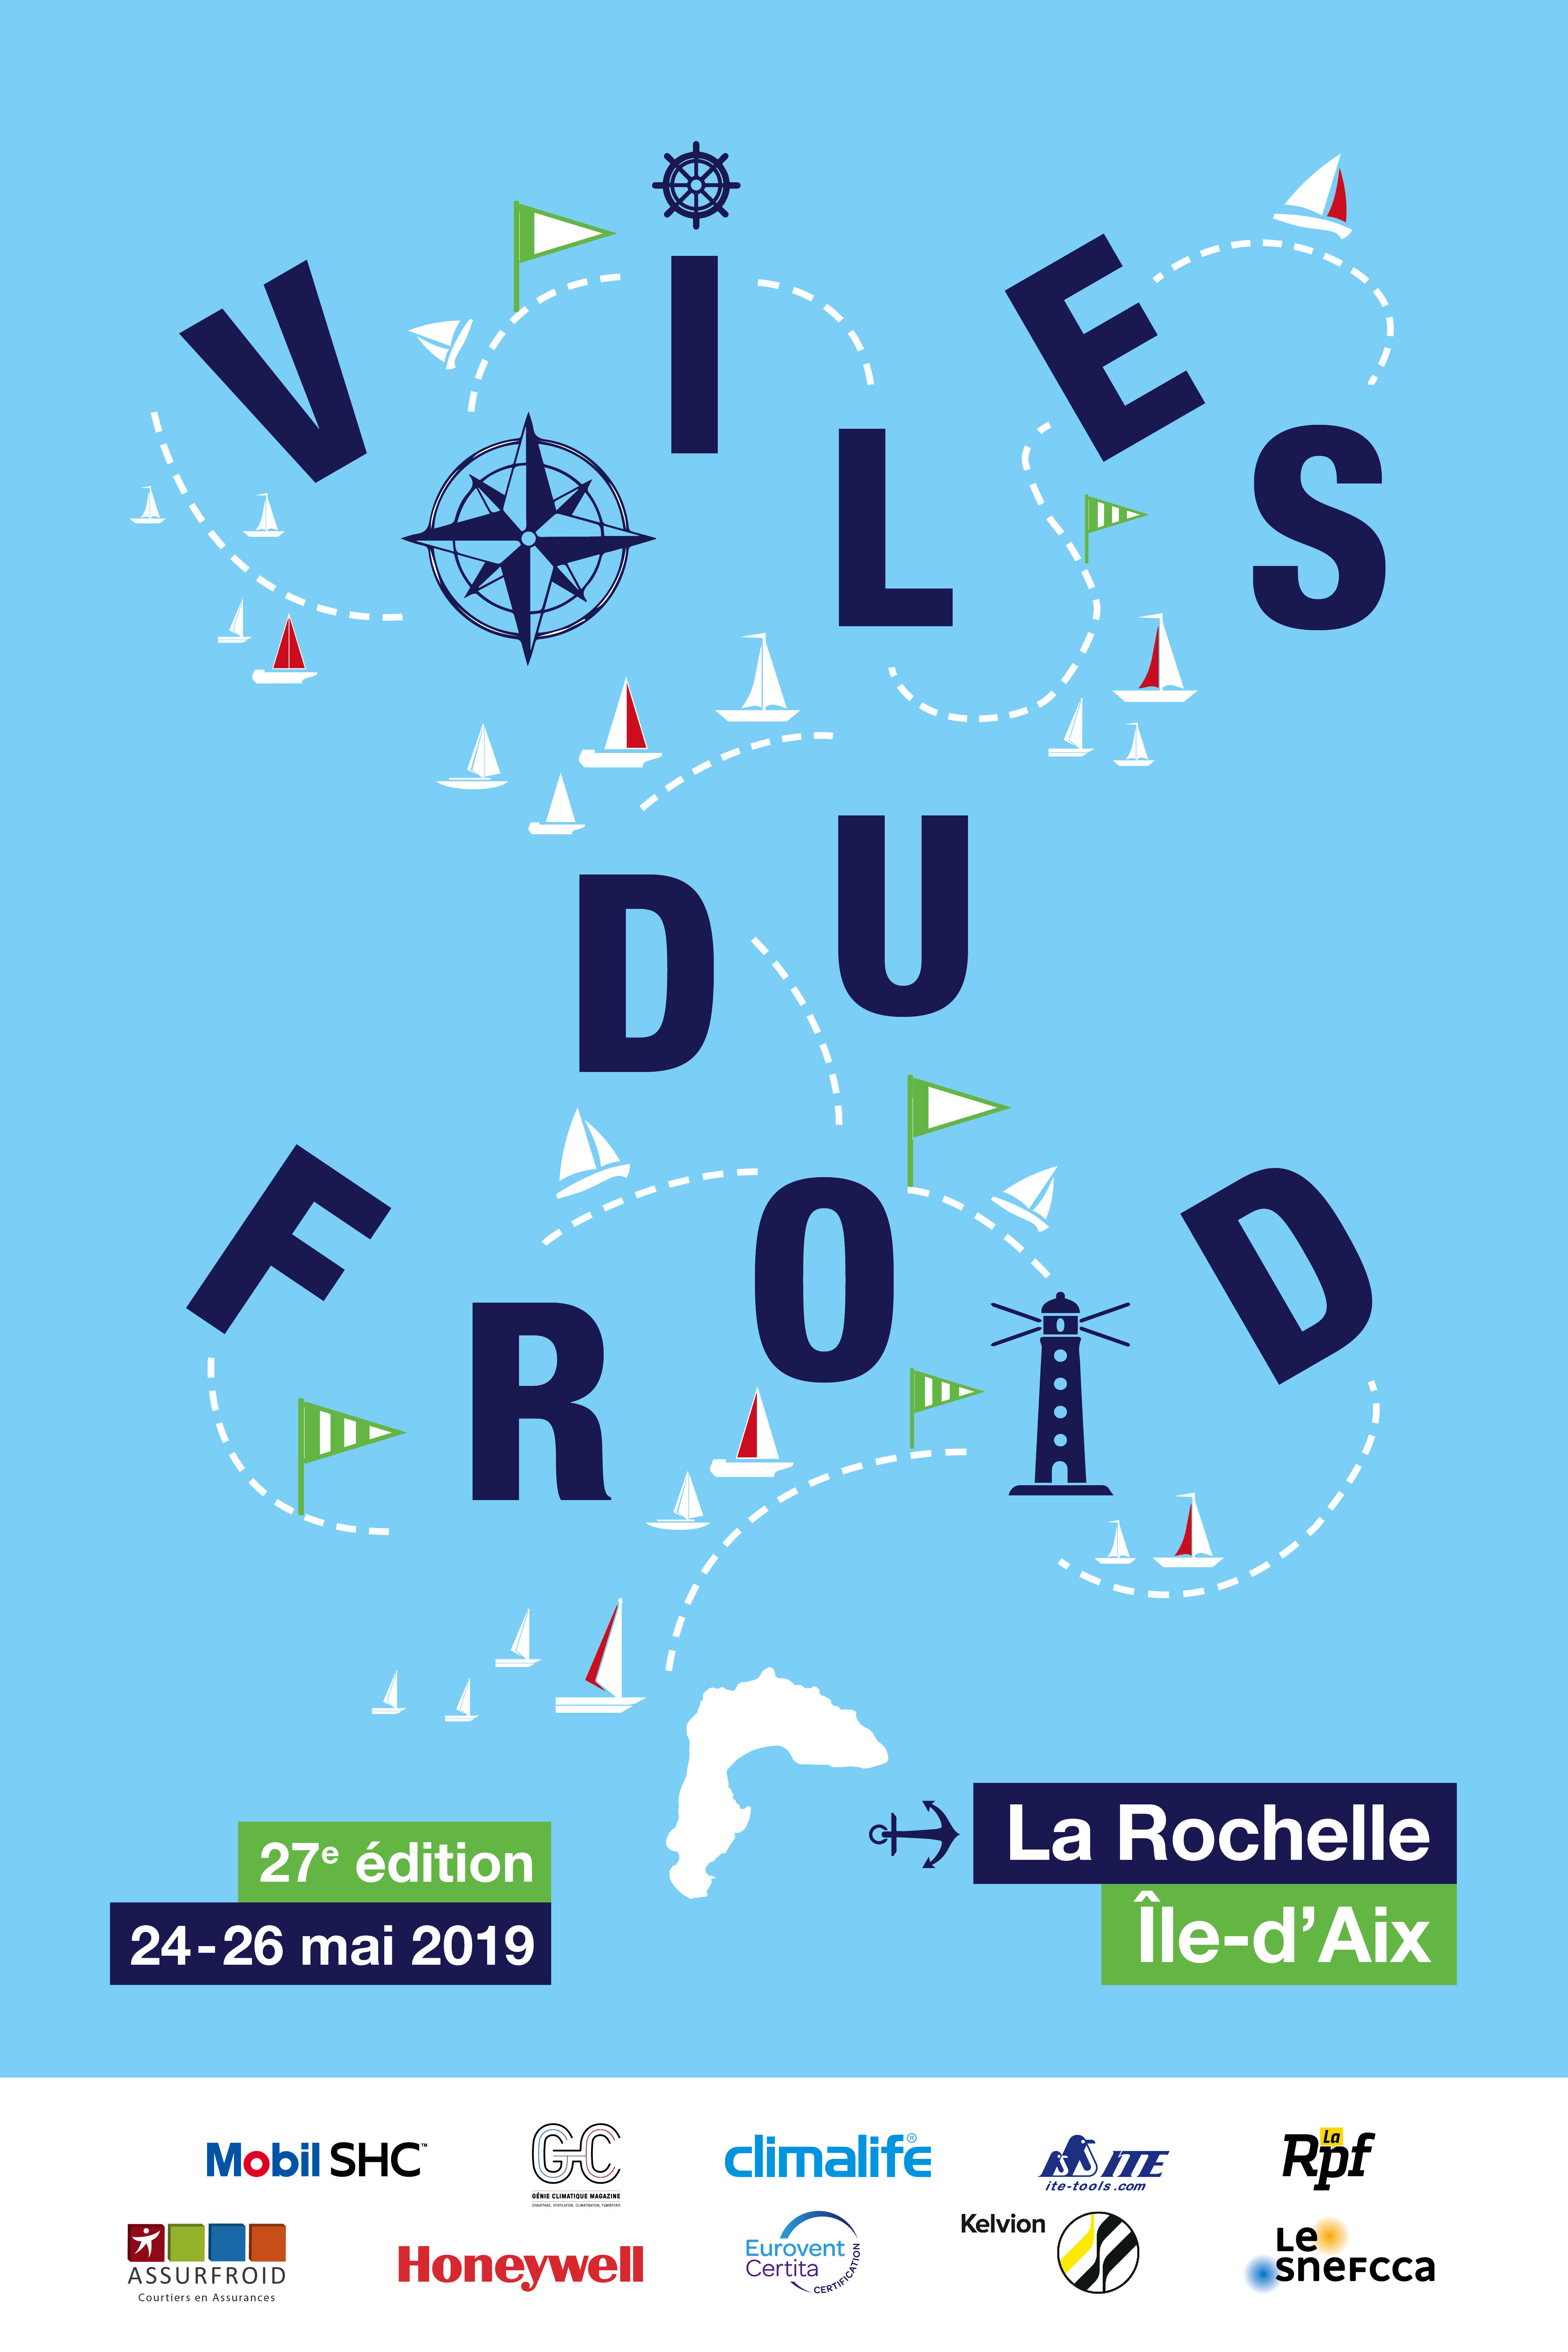 Voiles du Froid 2019 takes place 24, 25, 26 May in Charente Maritime, France